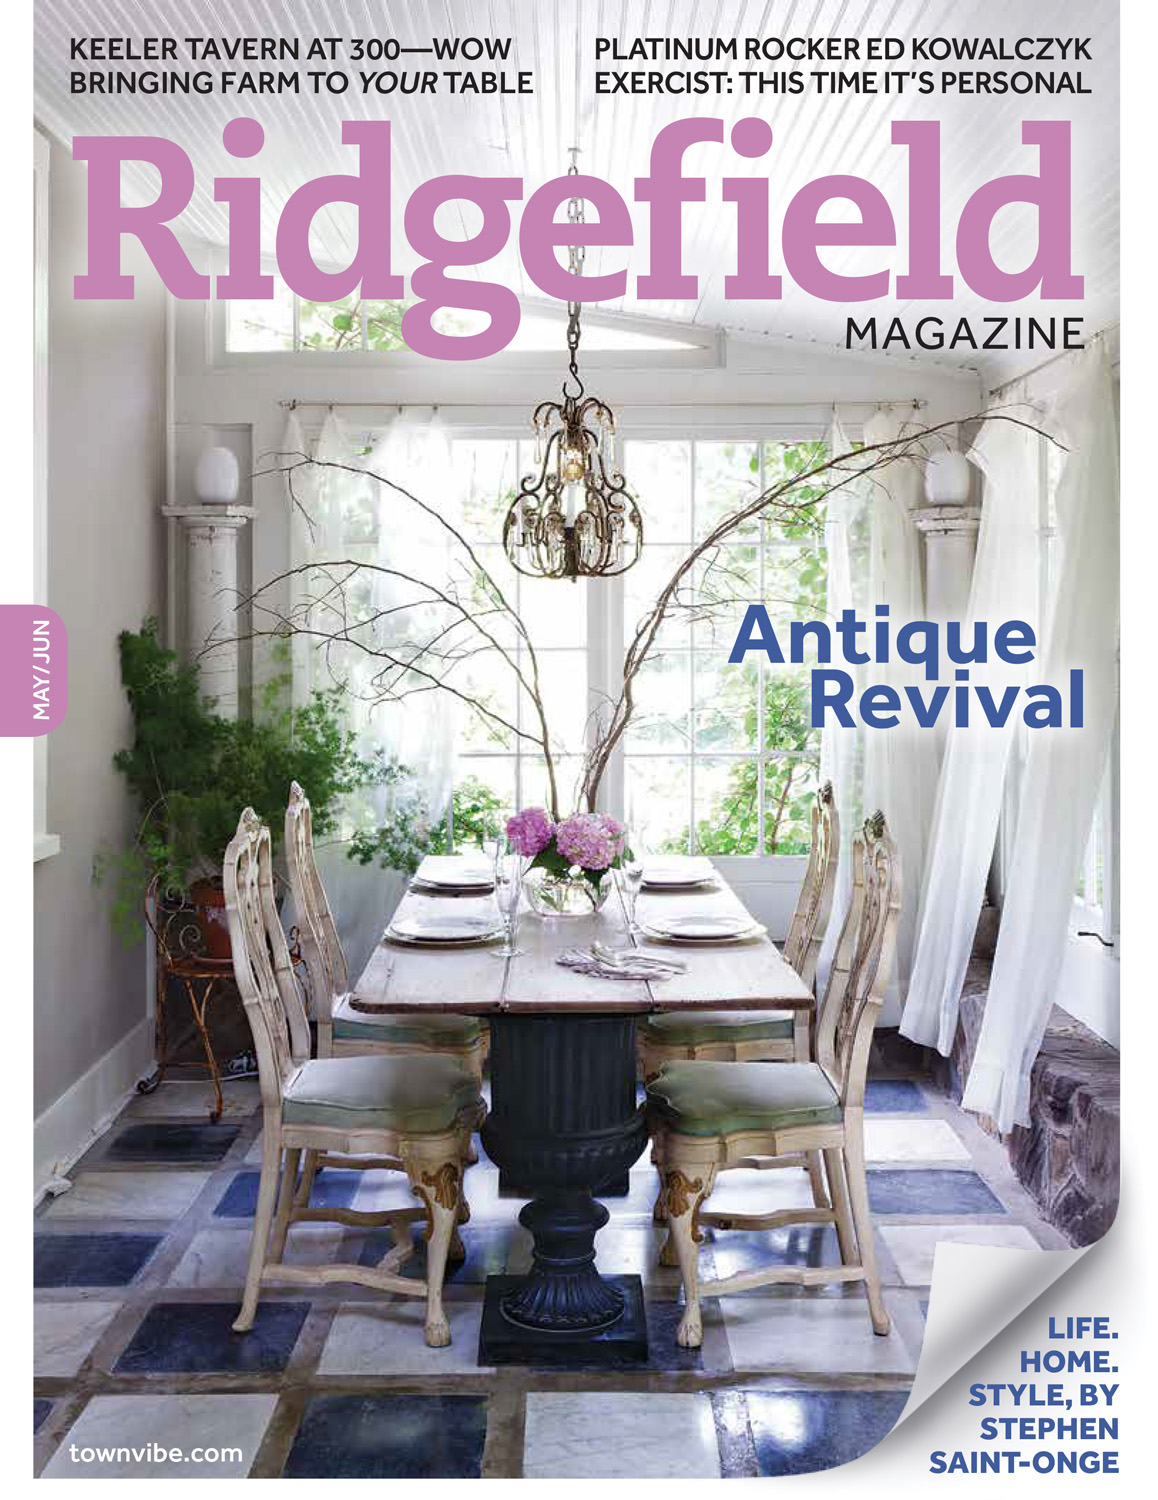 Ridgefield Magazine May/June 2013